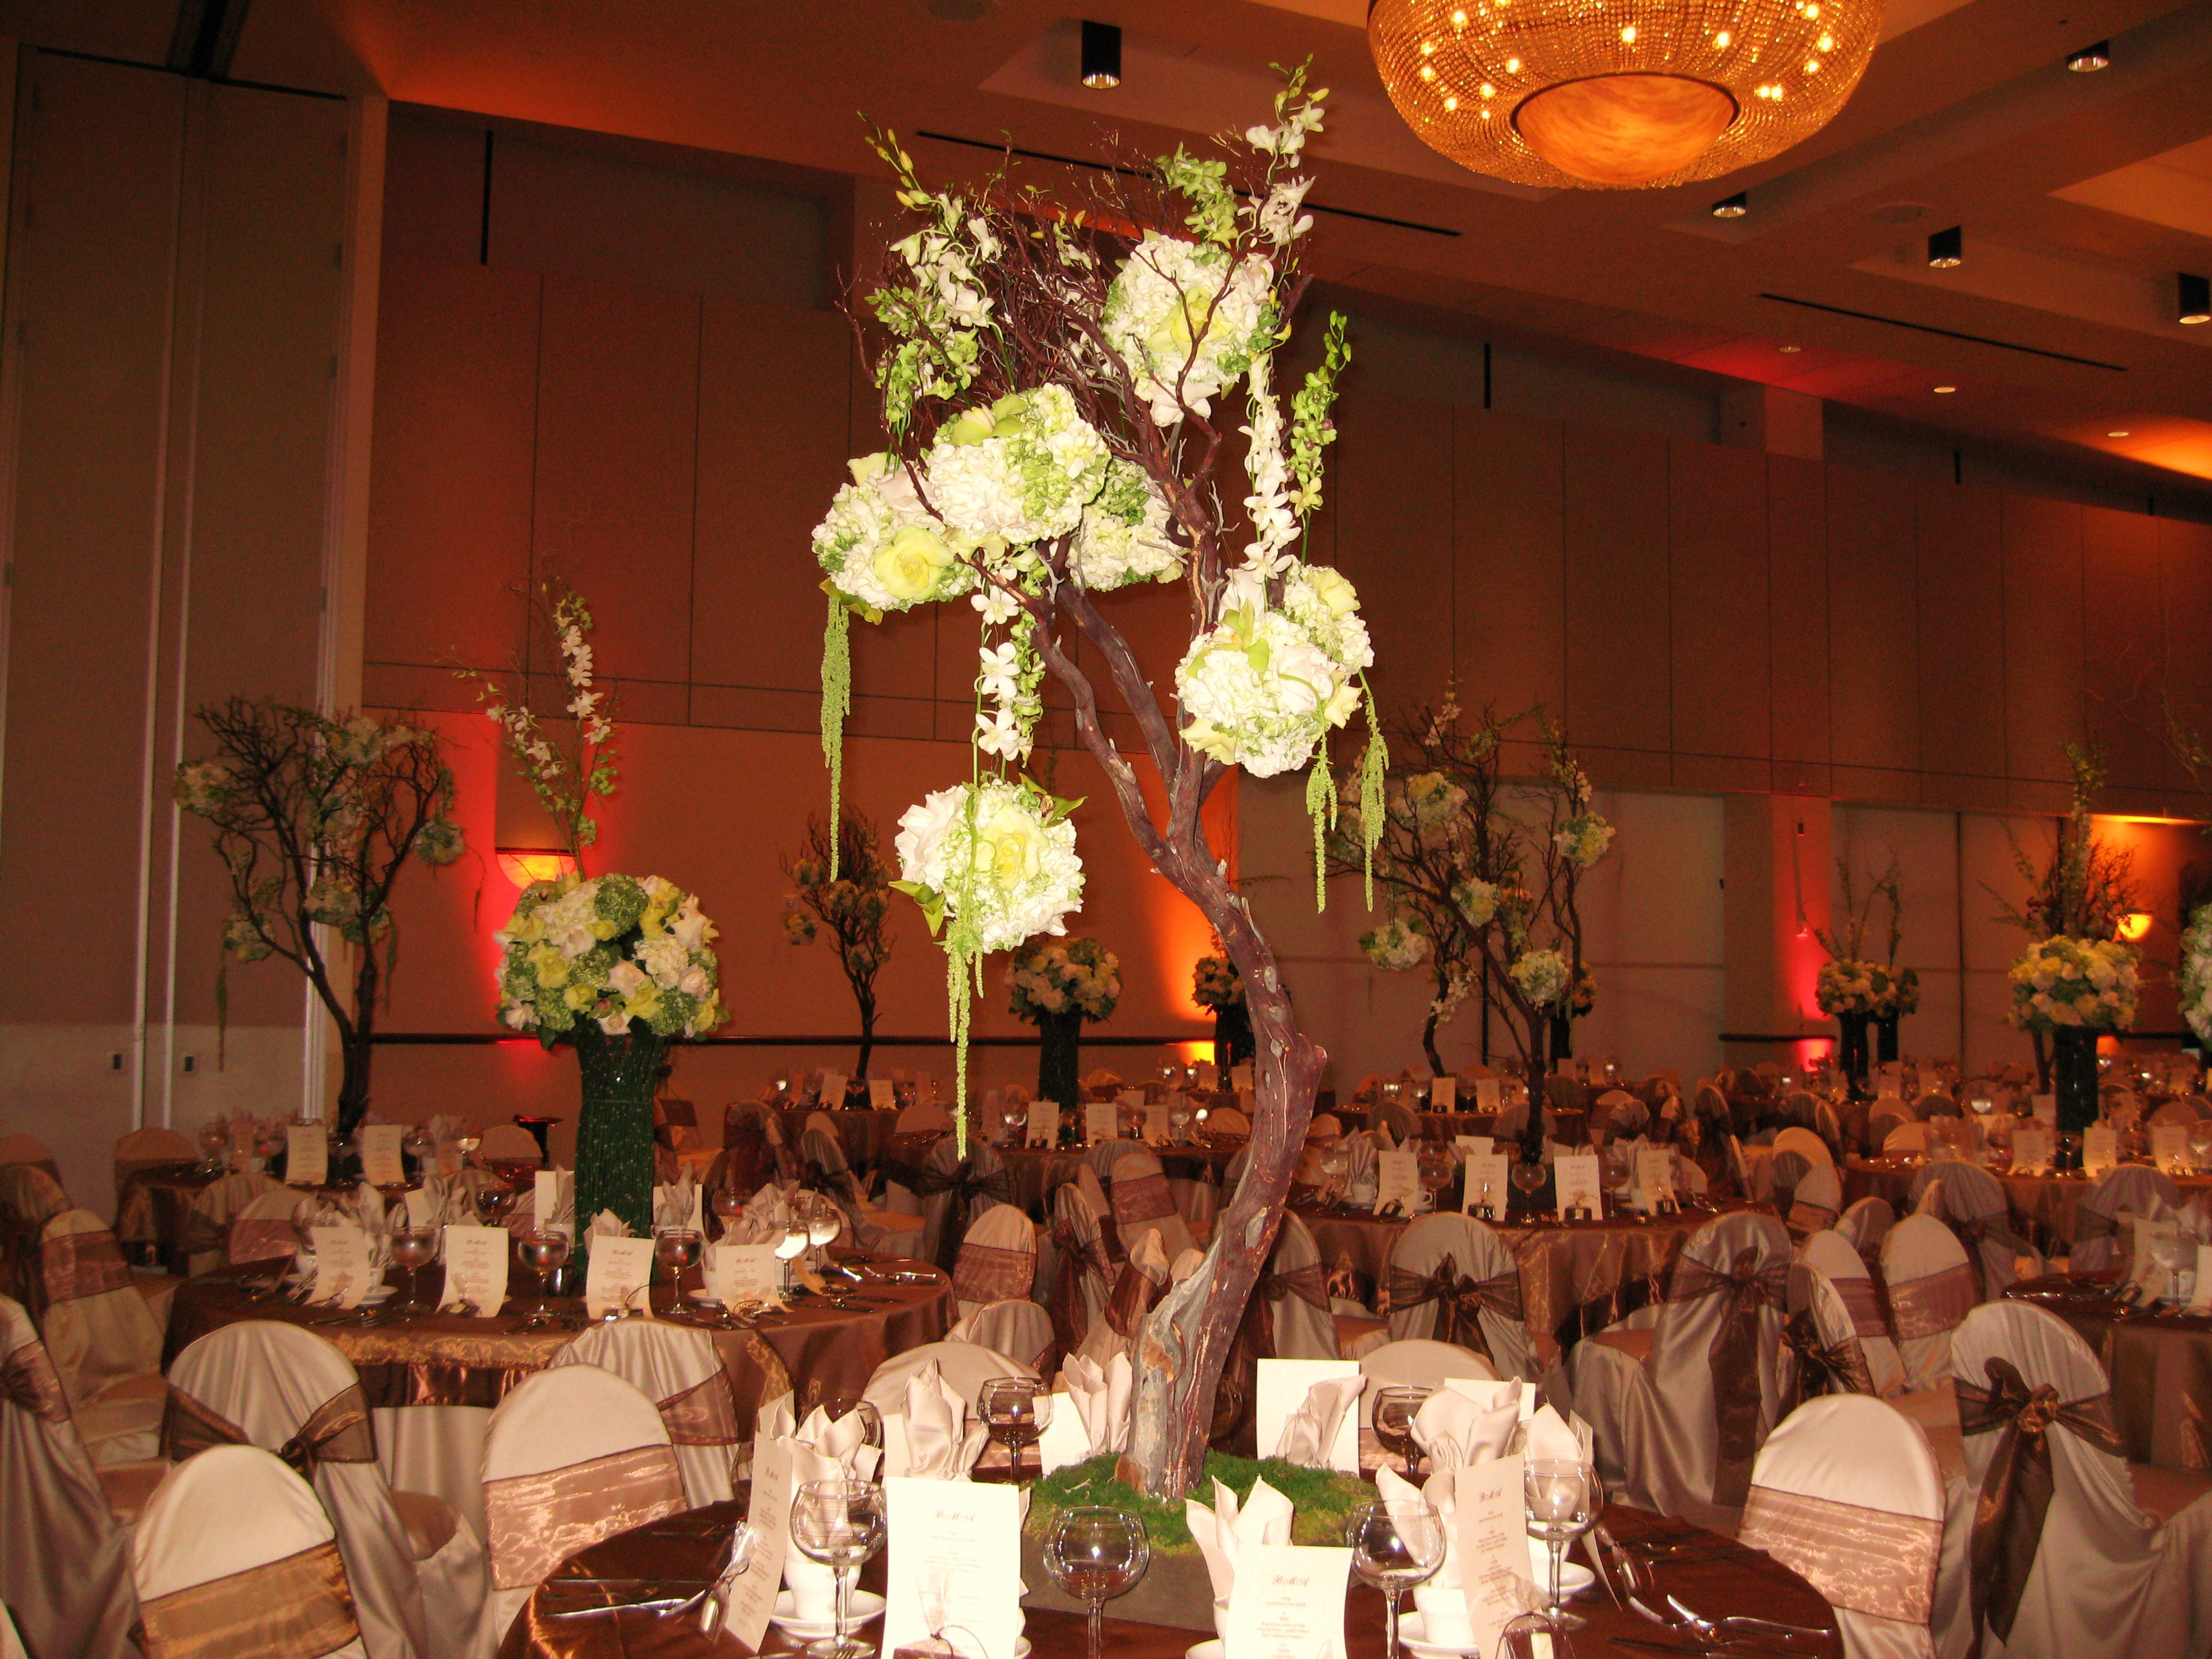 Reception, Flowers & Decor, white, orange, green, brown, gold, Lighting, Table, Chair, Covers, Overlays, Cloths, Pure elegance